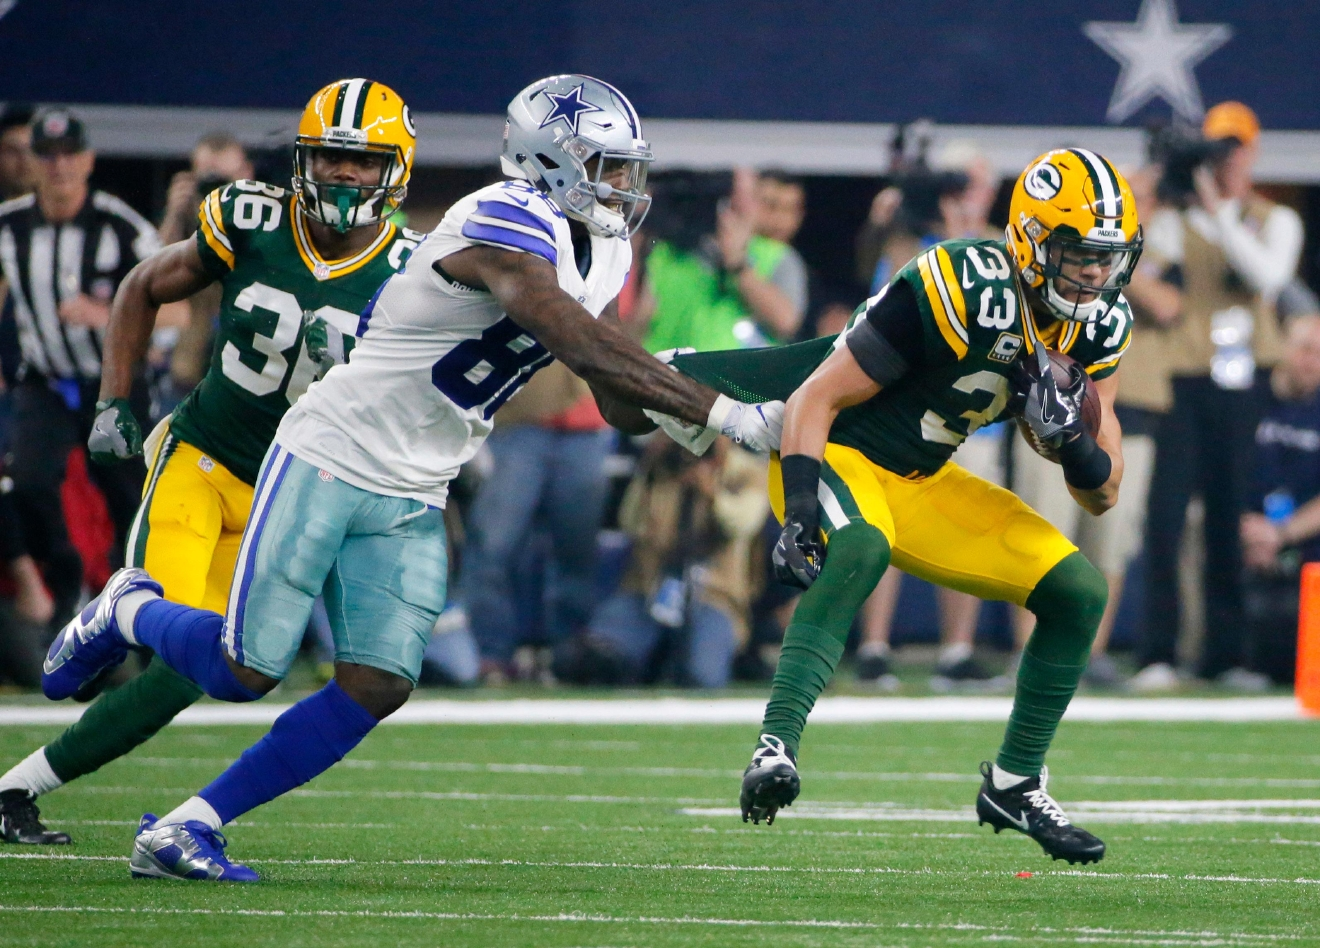 Rigopiano hotel avalanche first funerals as search goes on bbc news - Green Bay Packers Strong Safety Micah Hyde 33 Returns An Interception As Dallas Cowboys